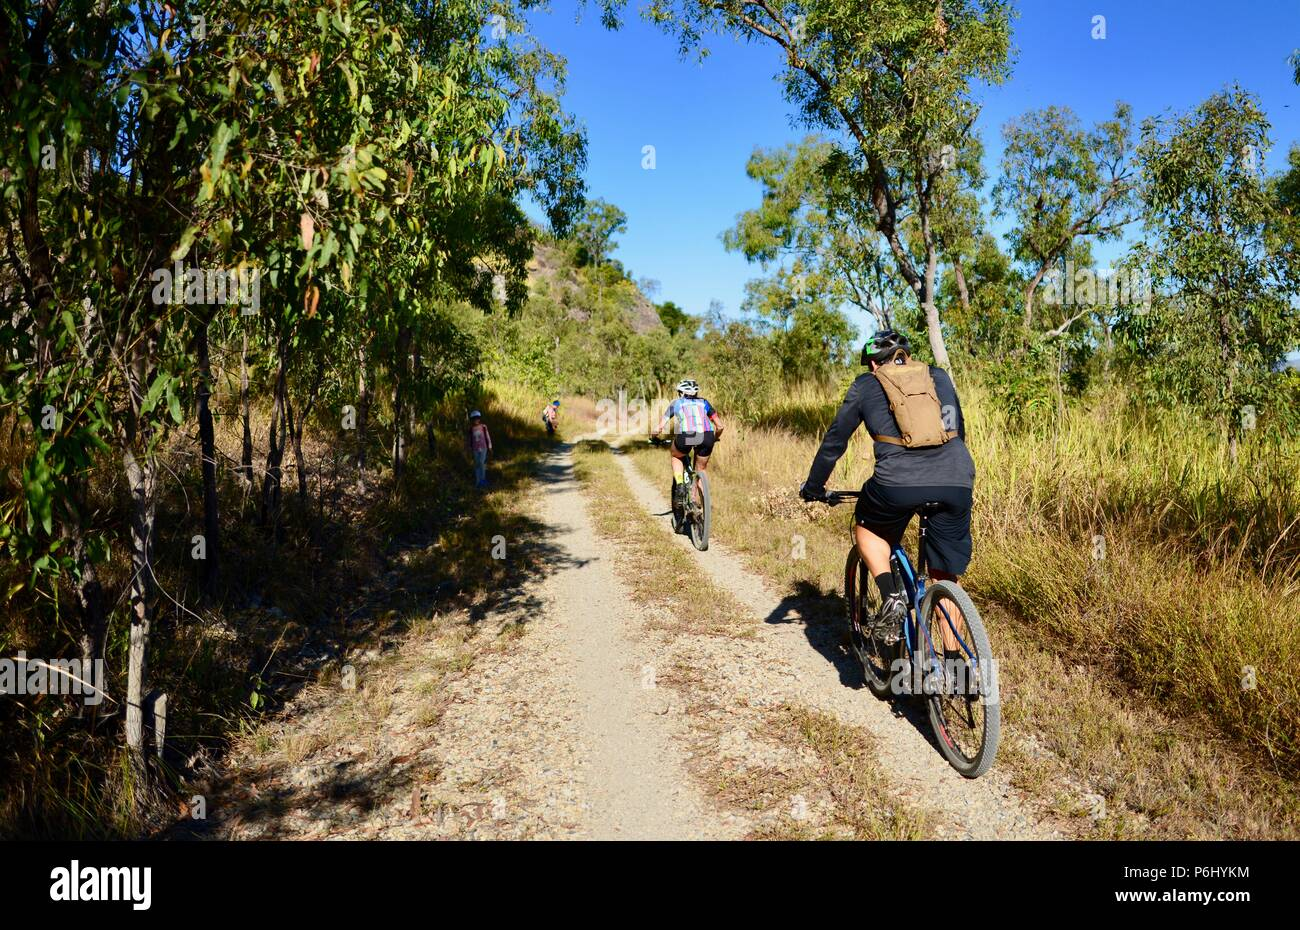 Two retiree bike riders riding on a dirt road, Many peaks hike to Mount Marlow, Townsville Town Common Queensland, 4810, Australia - Stock Image